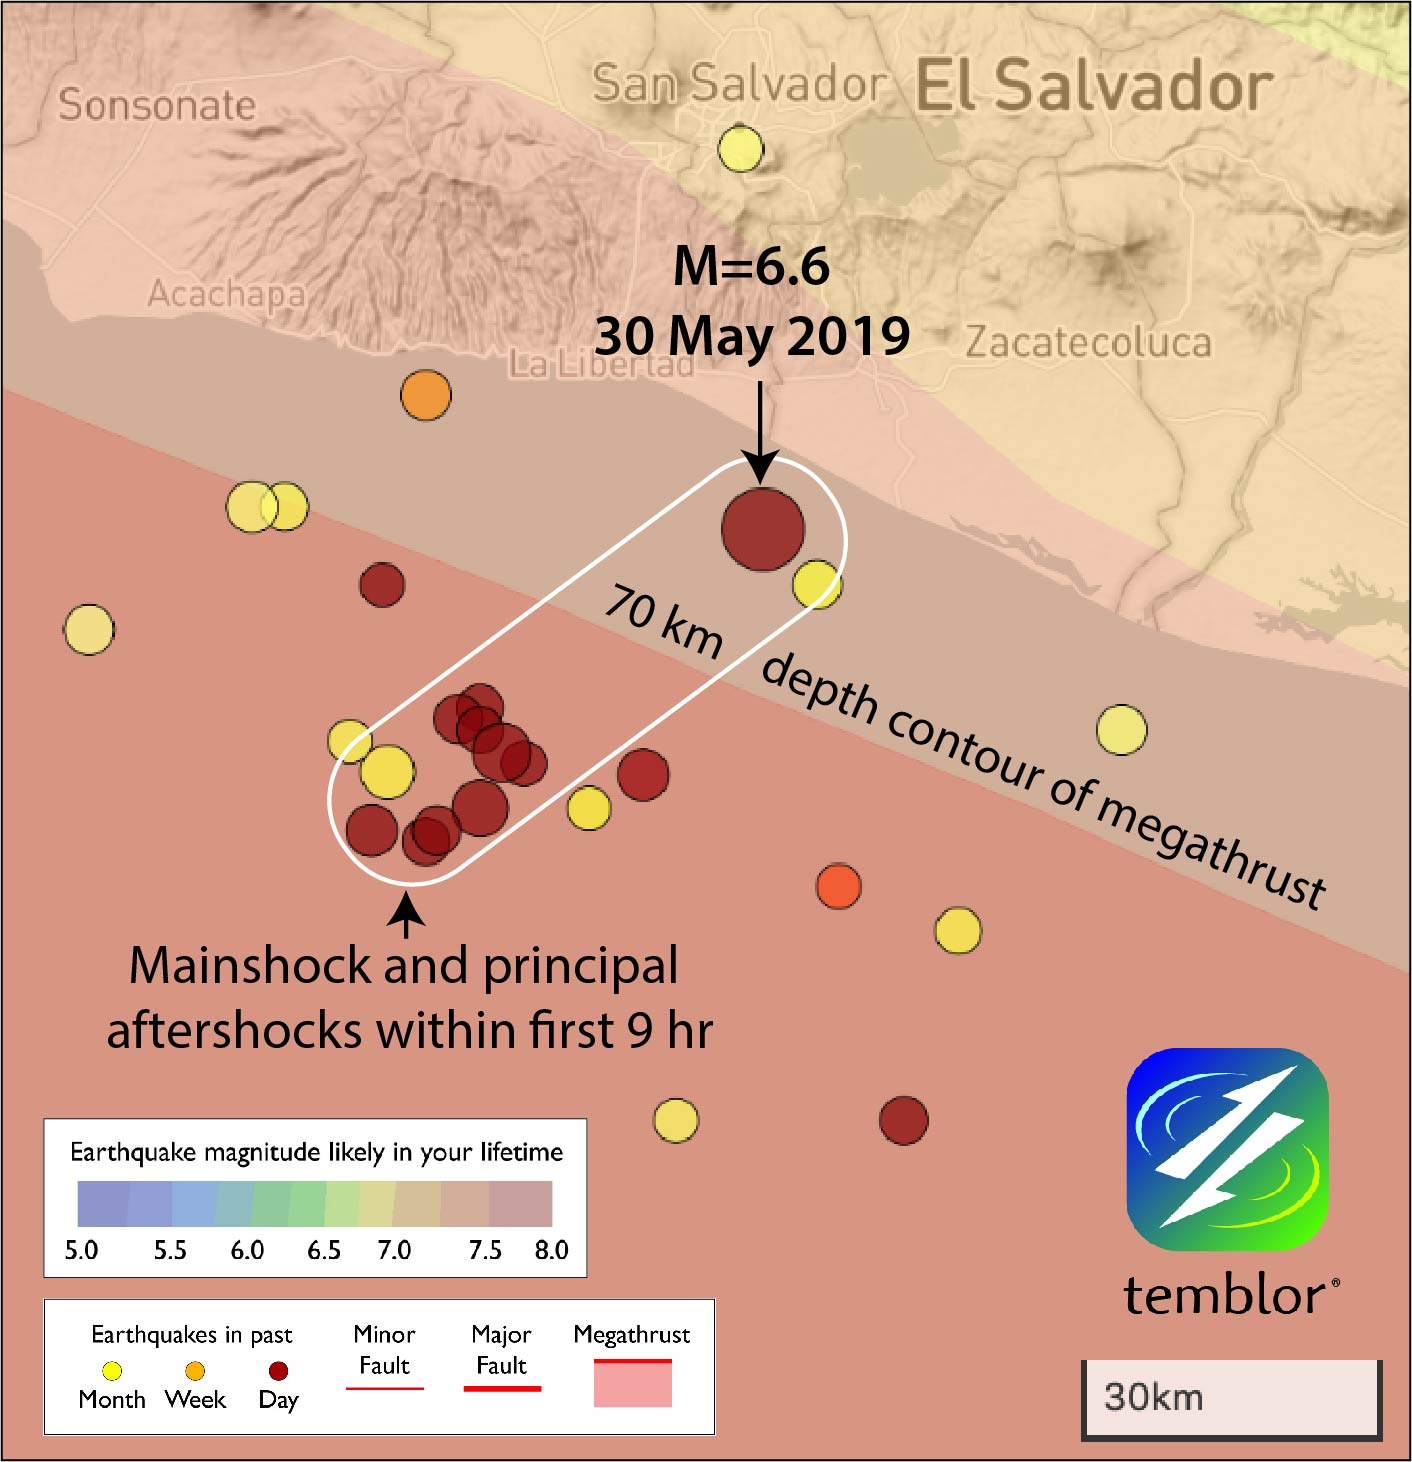 Mainshocks and aftershocks of the 30 May El Salvador Earthquake